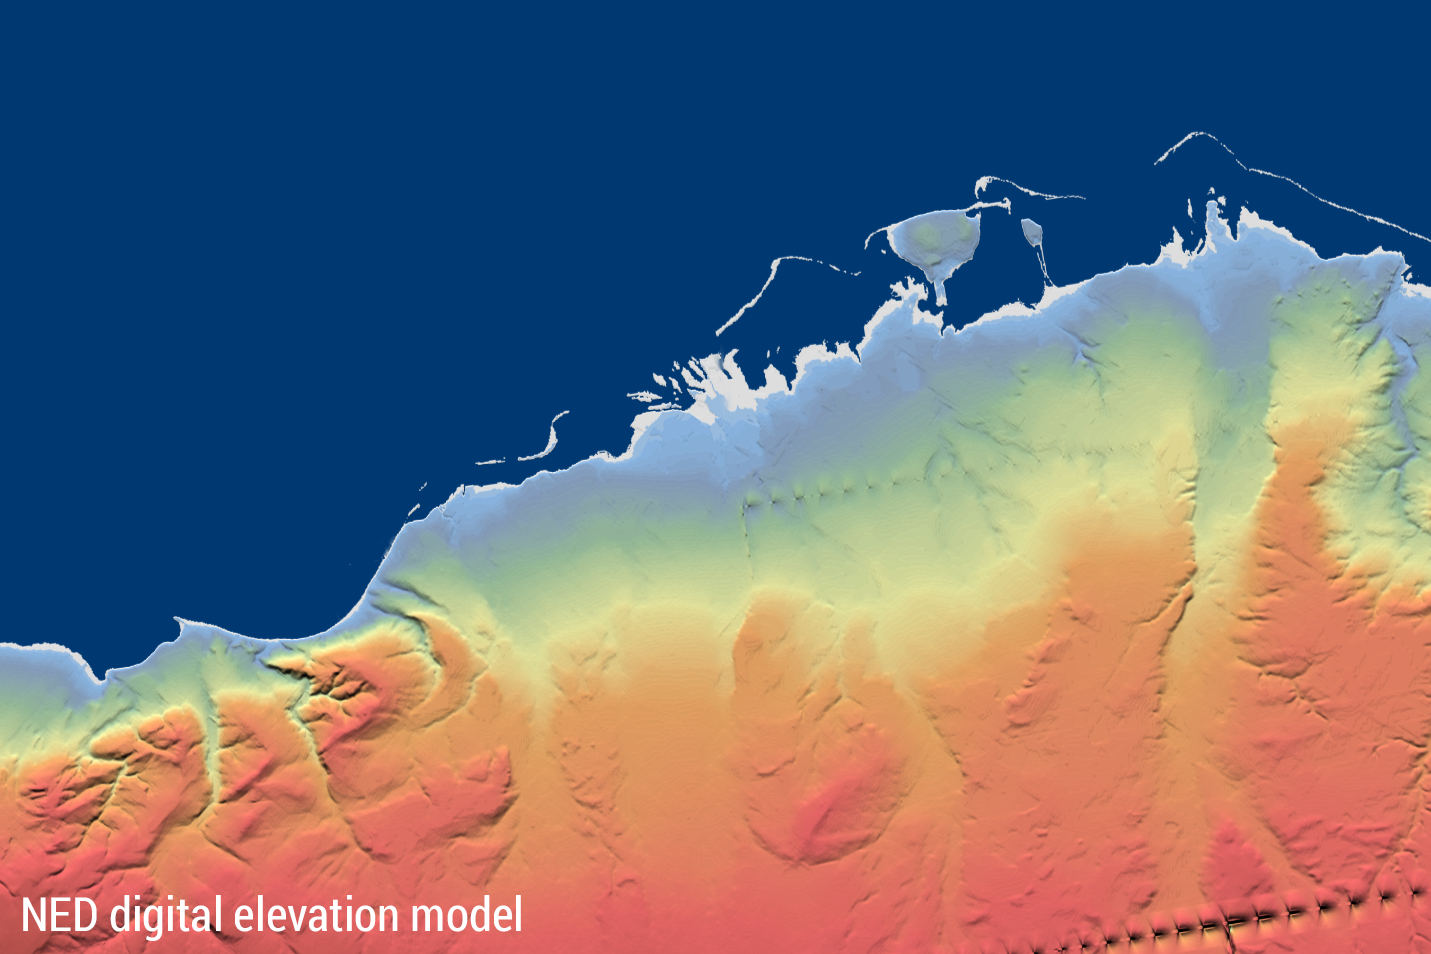 NED digital elevation model with artefacts